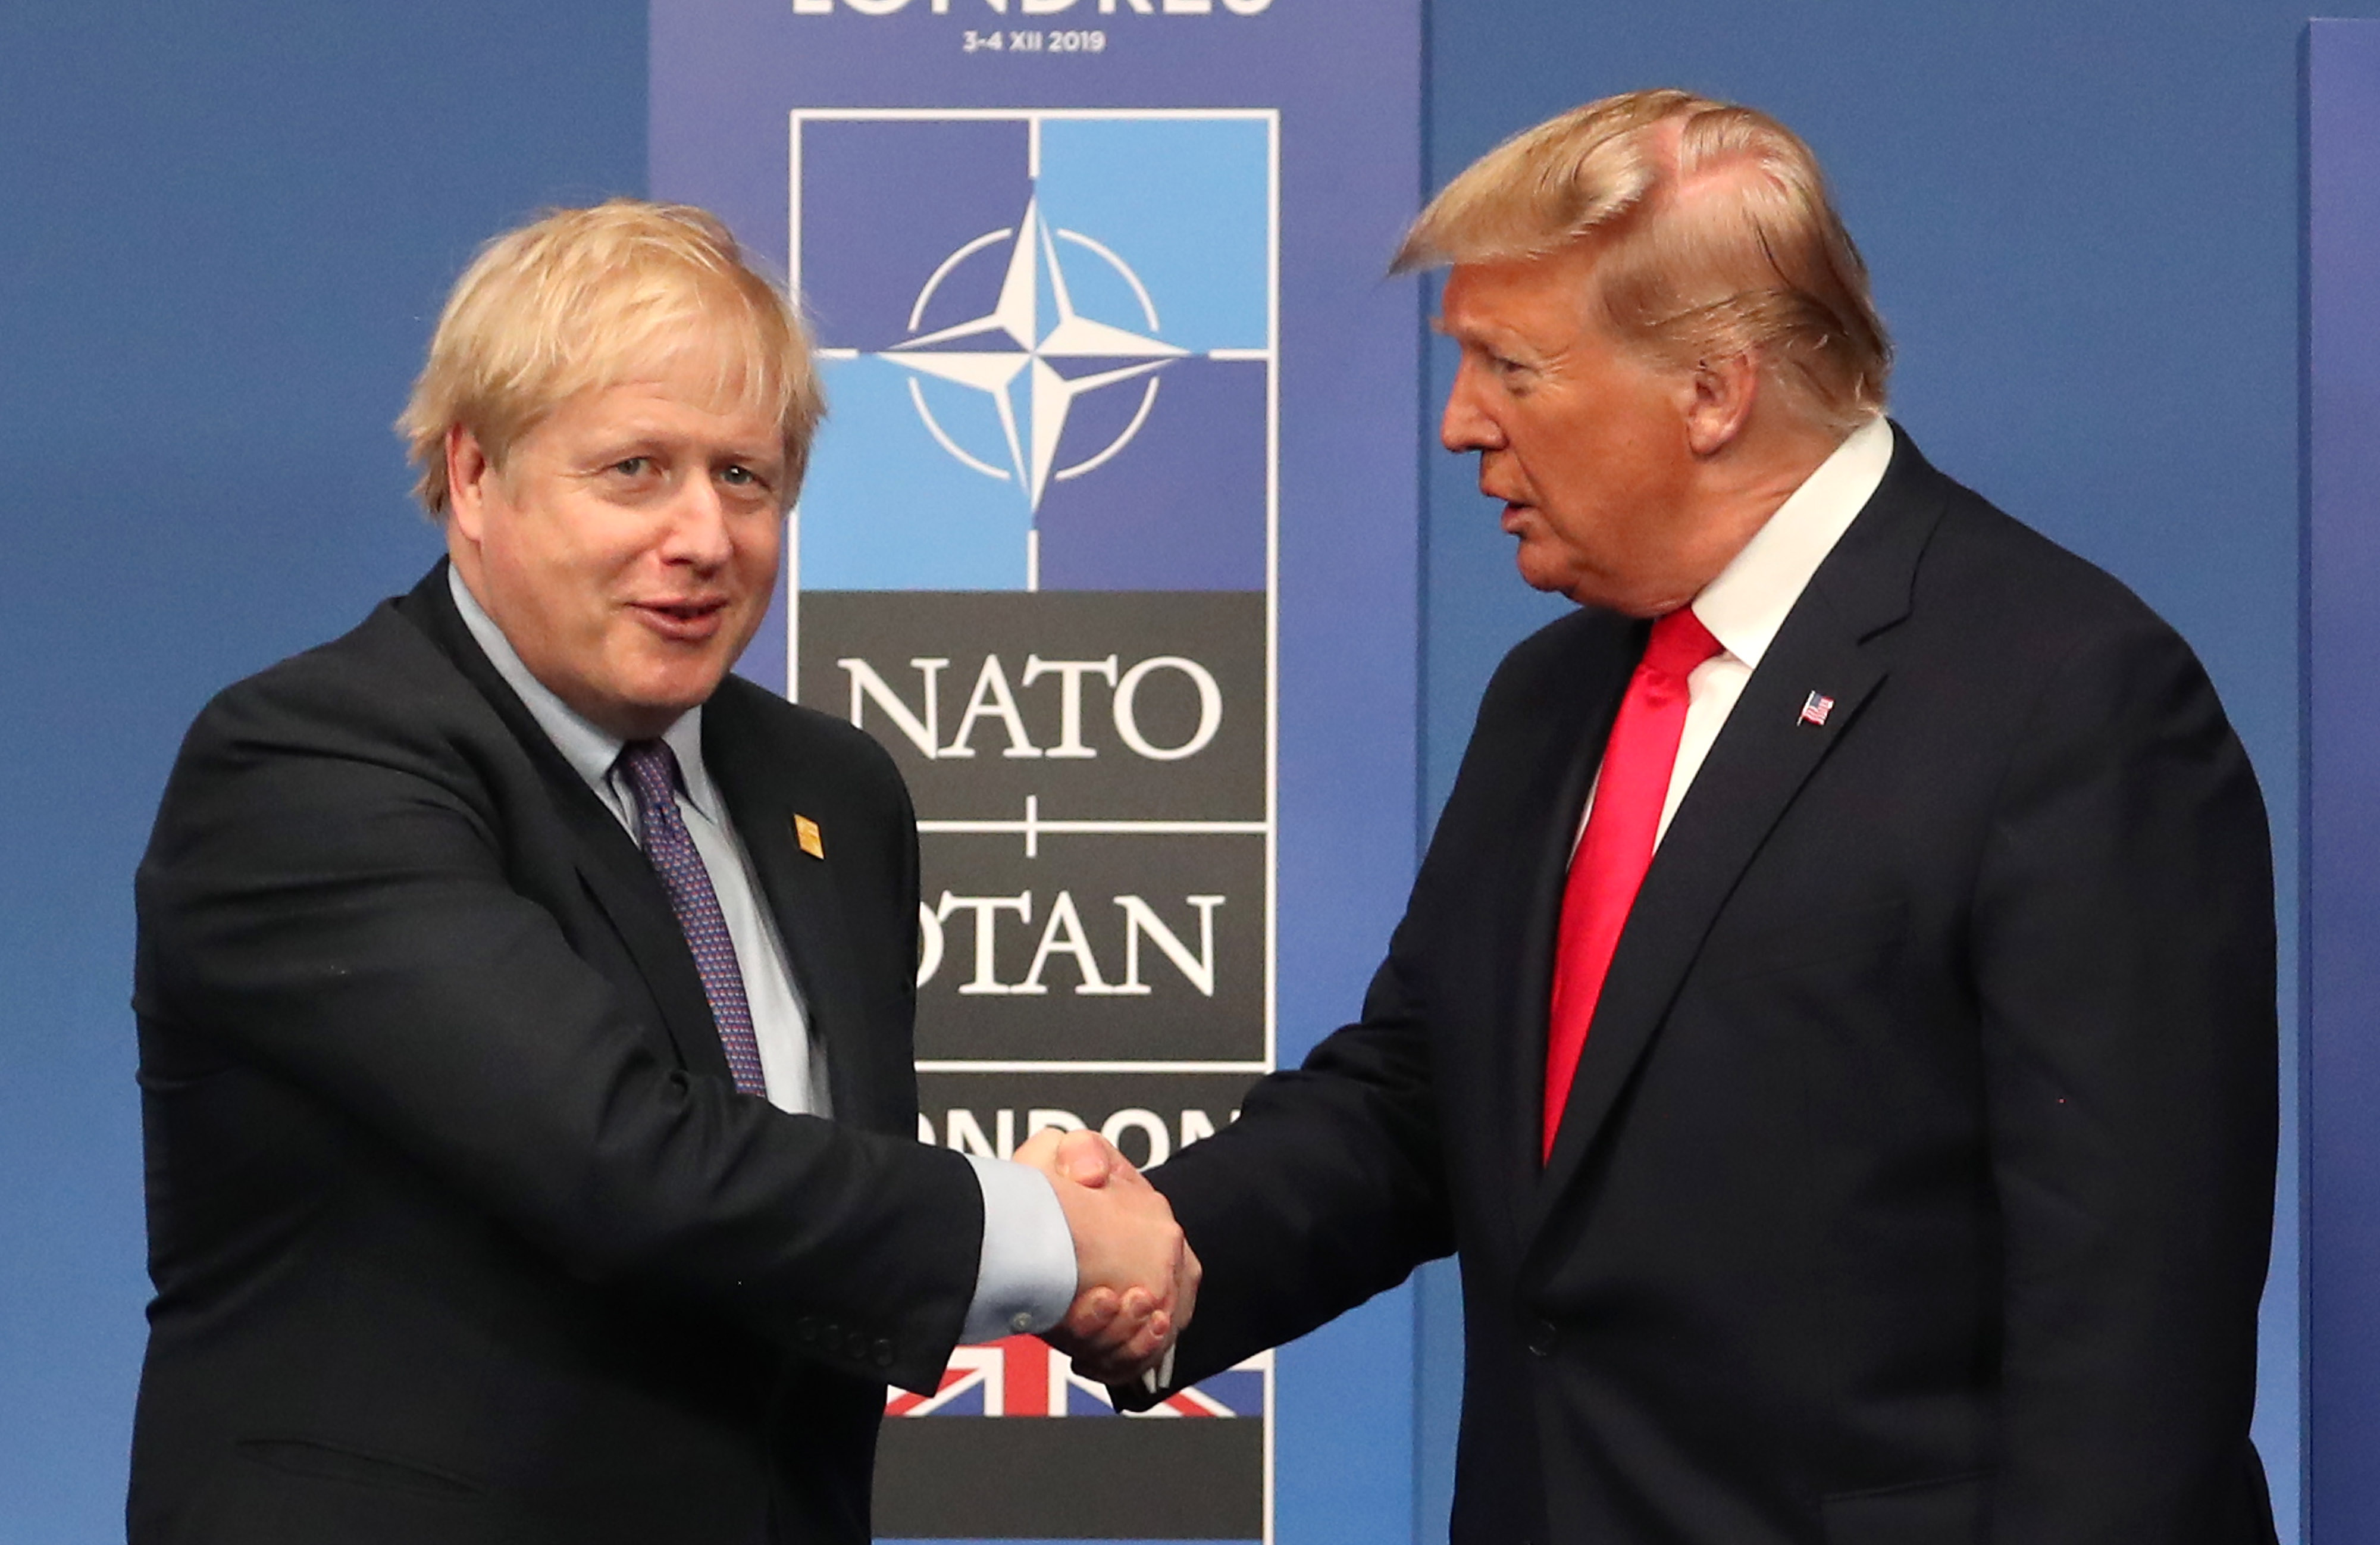 HERTFORD, ENGLAND - DECEMBER 04: British Prime Minister Boris Johnson shakes hands with US President Donald Trump onstage during the annual NATO heads of government summit on December 4, 2019 in Watford, England. France and the UK signed the Treaty of Dunkirk in 1947 in the aftermath of WW2 cementing a mutual alliance in the event of an attack by Germany or the Soviet Union. The Benelux countries joined the Treaty and in April 1949 expanded further to include North America and Canada followed by Portugal, Italy, Norway, Denmark and Iceland. This new military alliance became the North Atlantic Treaty Organisation (NATO). The organisation grew with Greece and Turkey becoming members and a re-armed West Germany was permitted in 1955. This encouraged the creation of the Soviet-led Warsaw Pact delineating the two sides of the Cold War. This year marks the 70th anniversary of NATO. (Photo by Steve Parsons-WPA Pool/Getty Images)